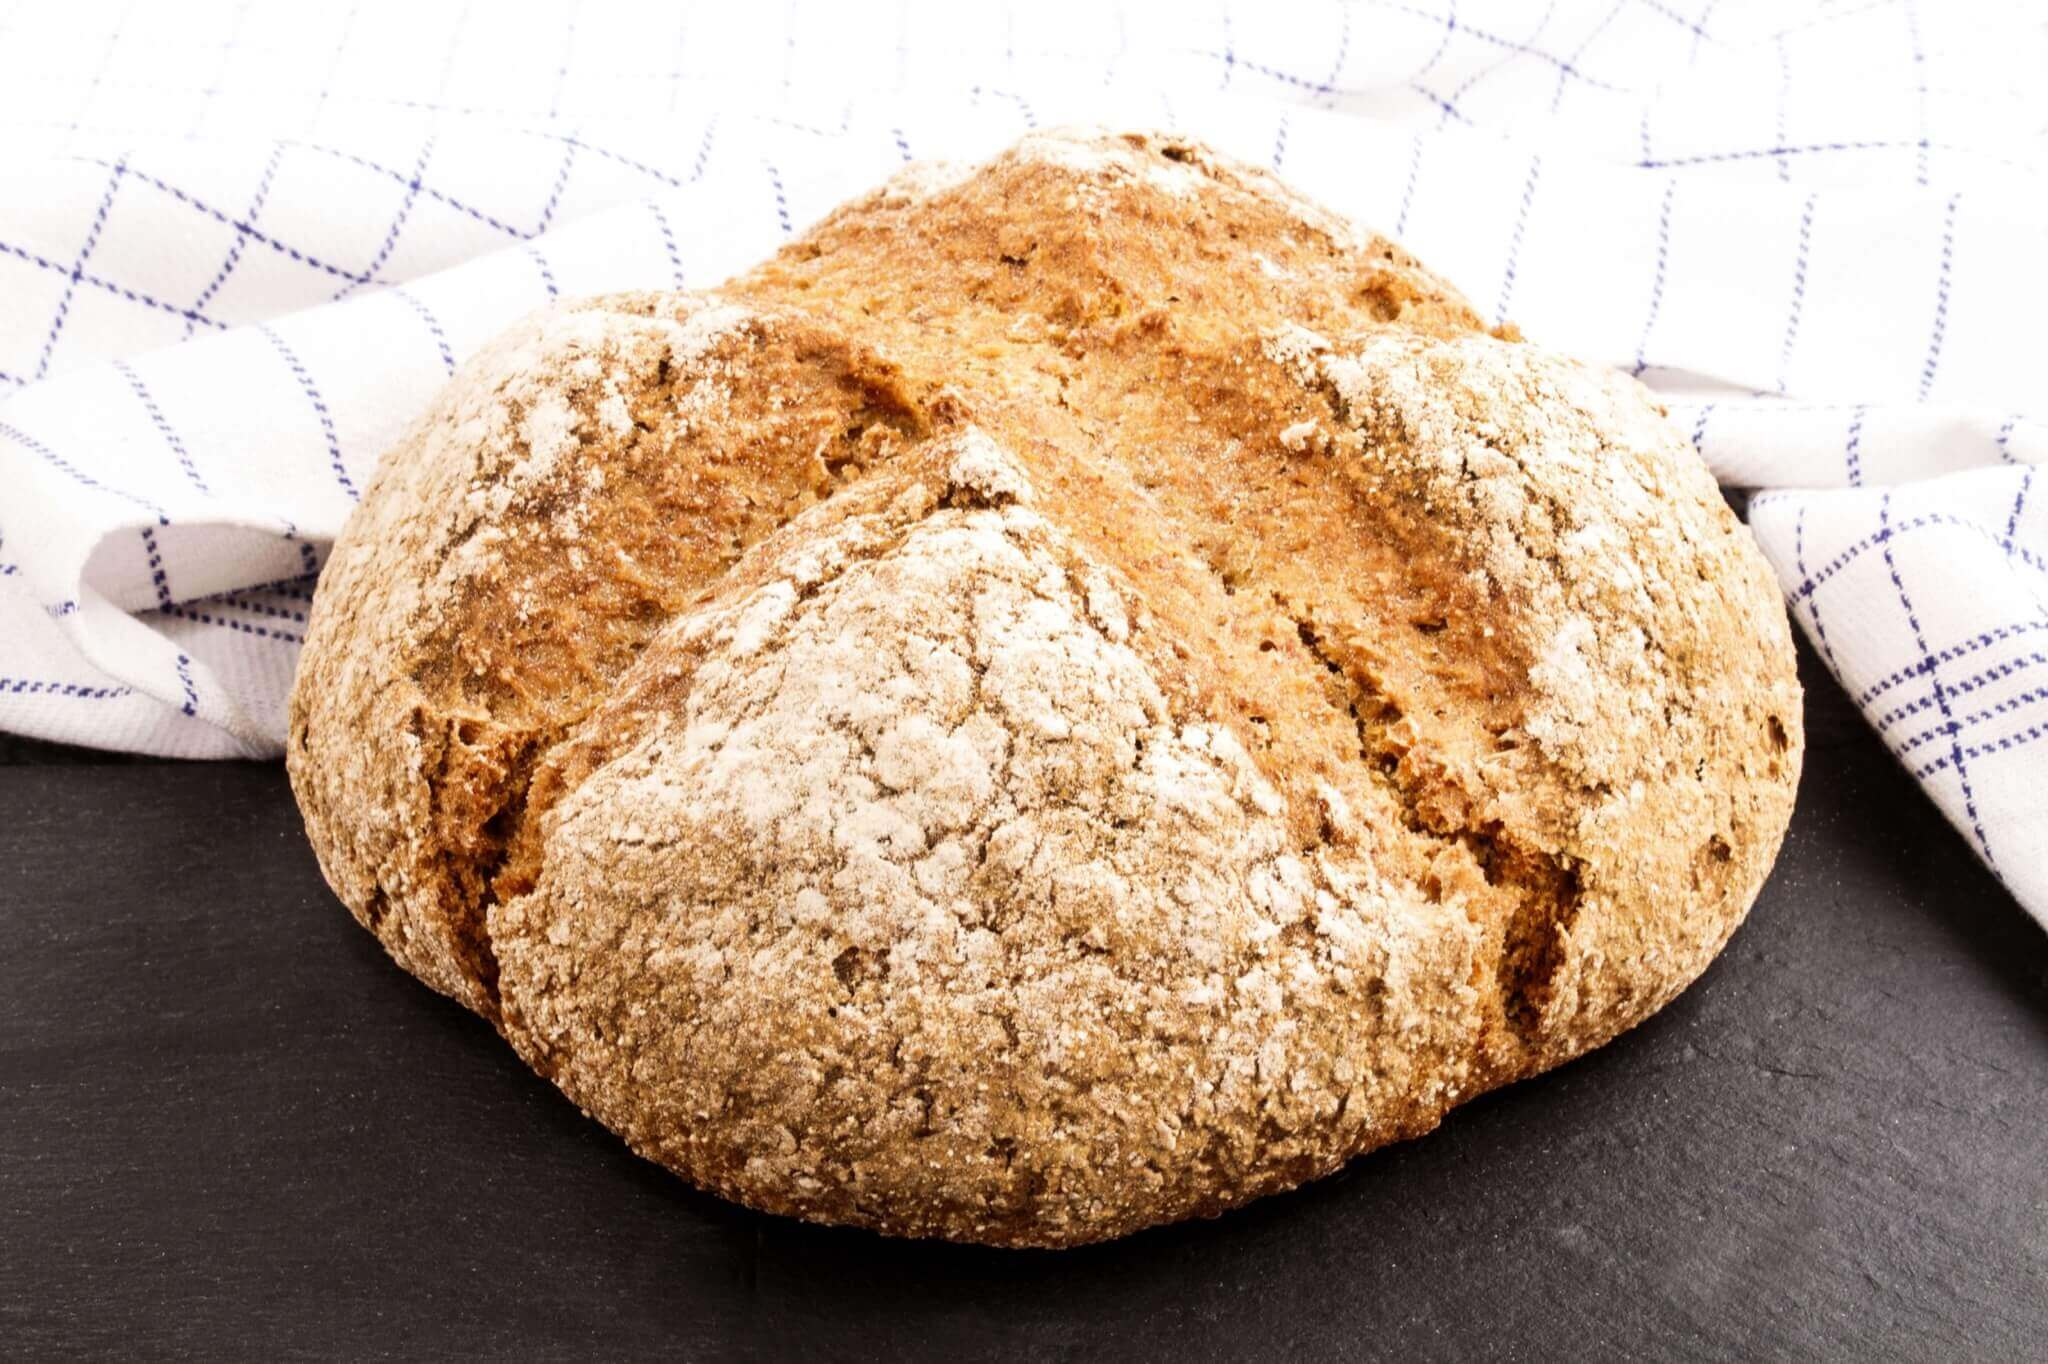 Close up image of a full loaf of soda bread on a white teatowel